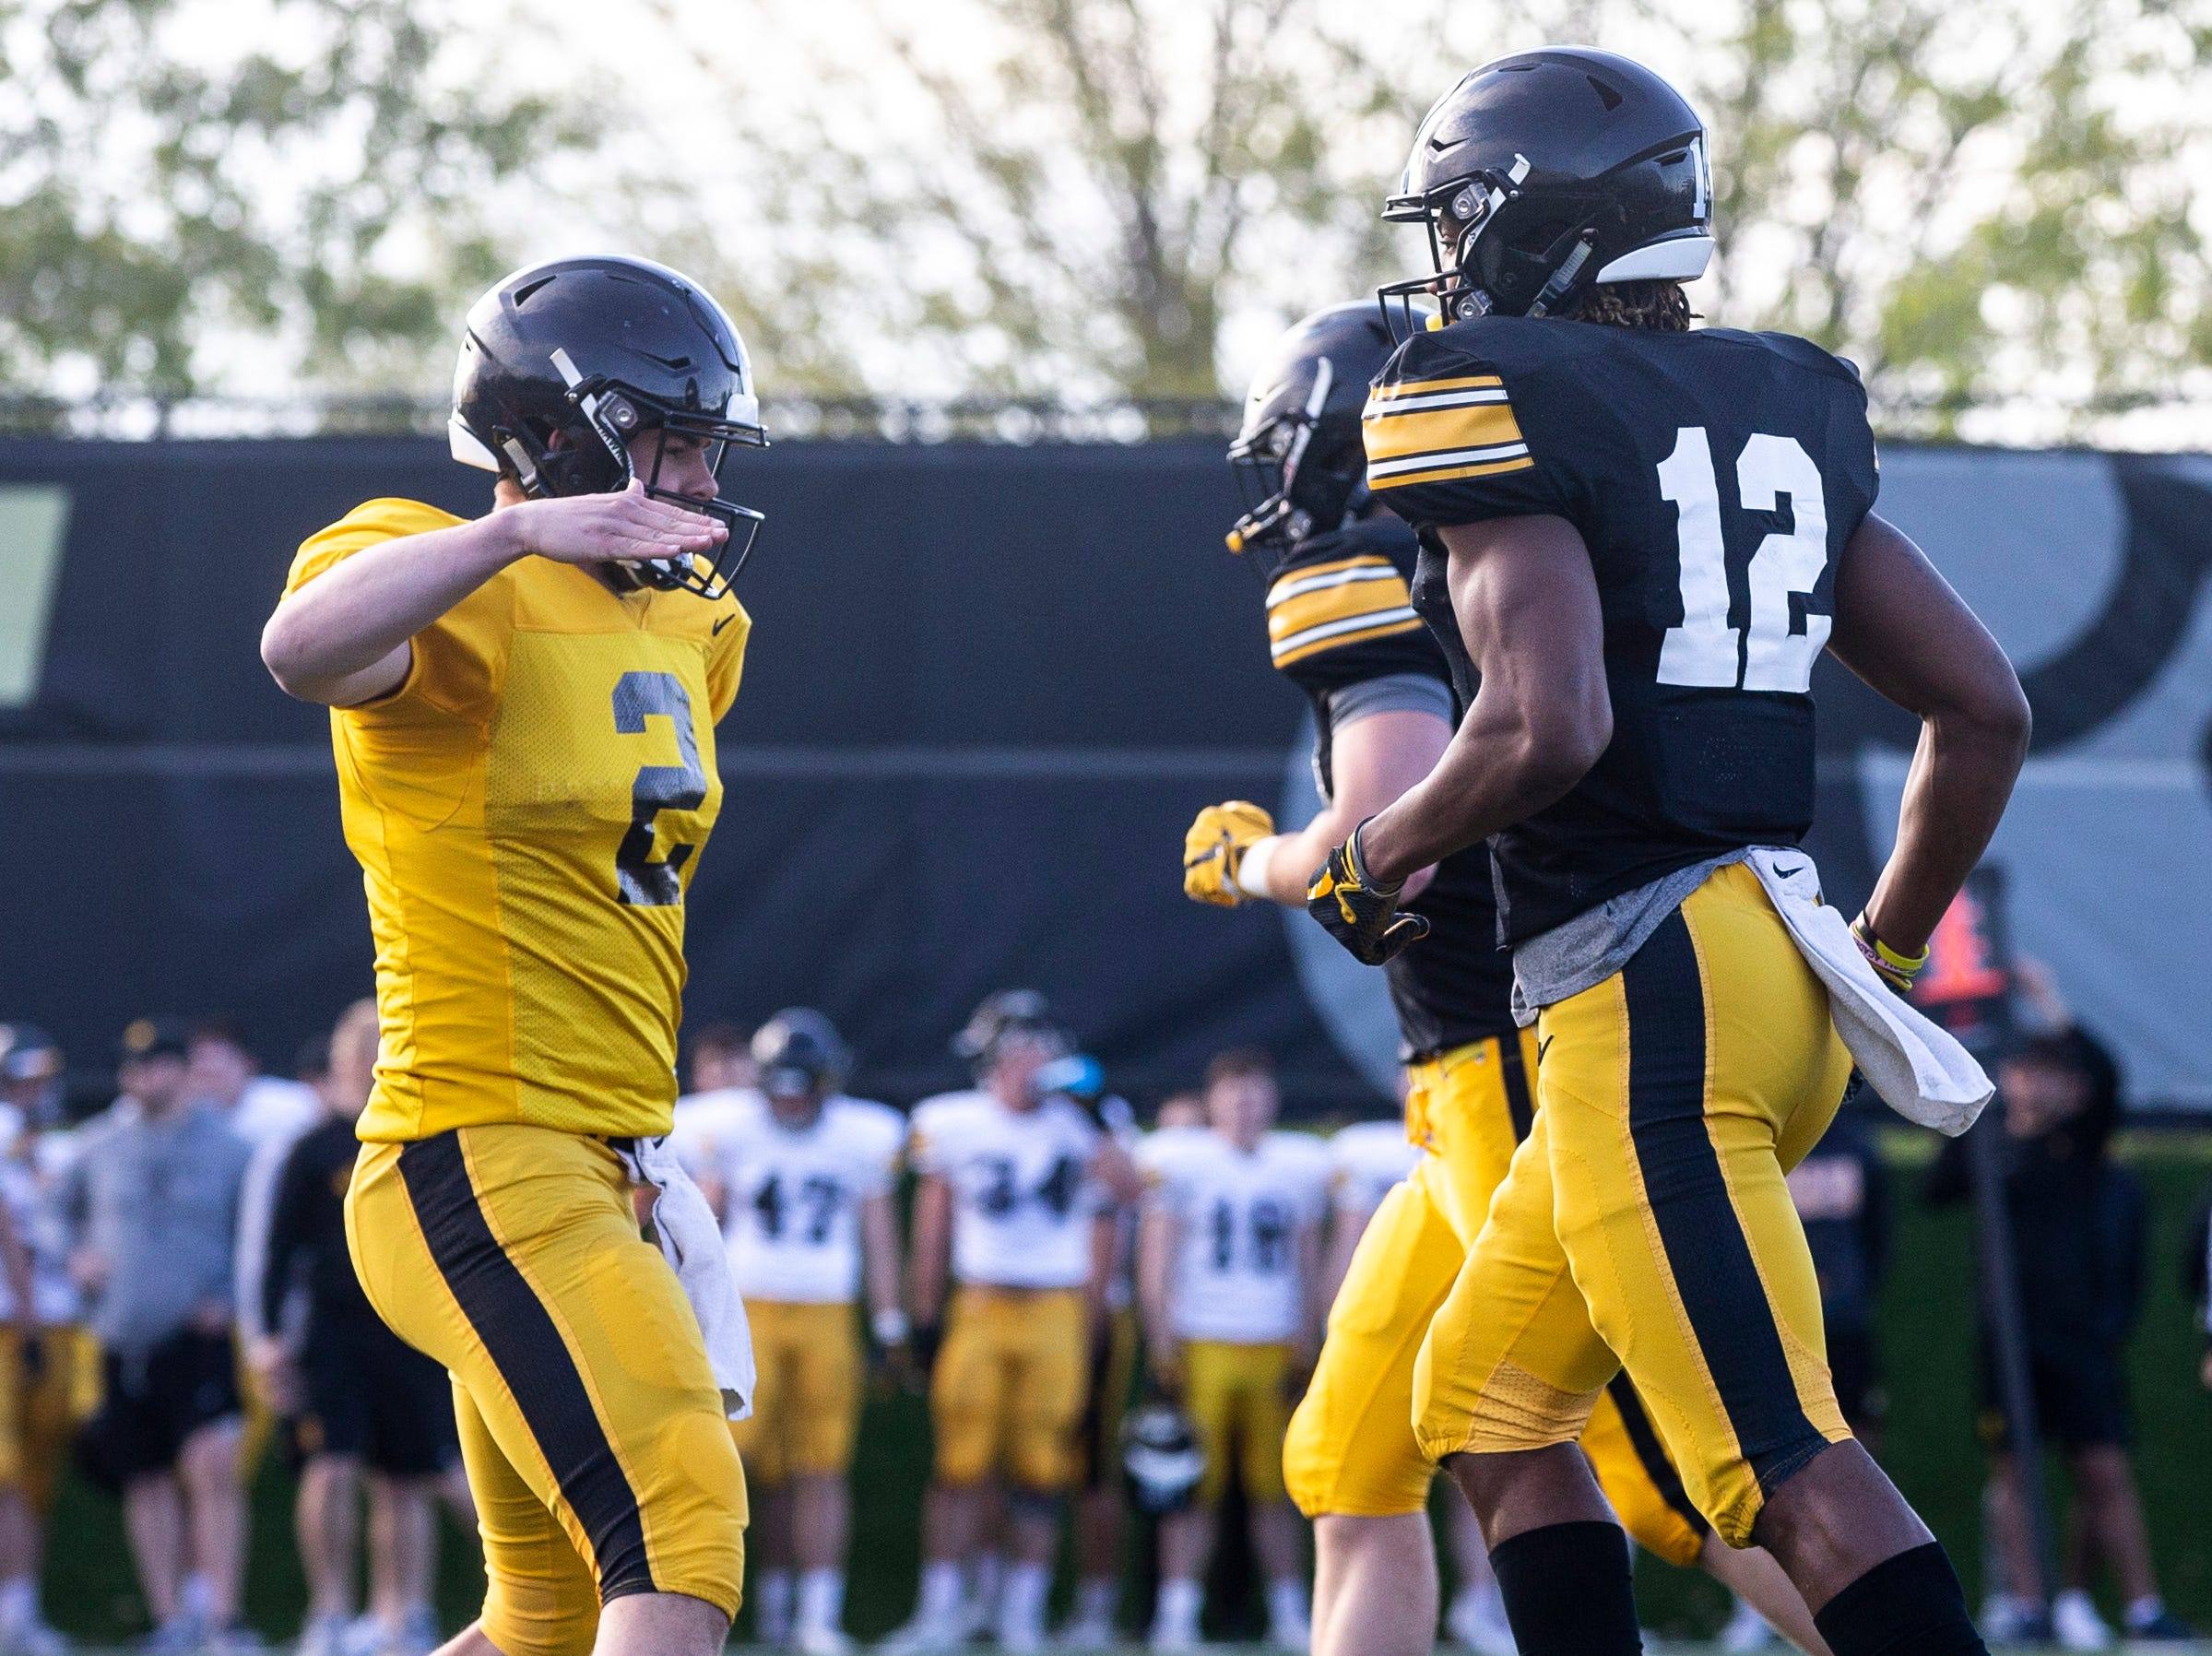 Iowa quarterback Peyton Mansell (2) high-fives teammate Brandon Smith (12) after his touchdown catch during the final spring football practice, Friday, April 26, 2019, at the University of Iowa outdoor practice facility in Iowa City, Iowa.